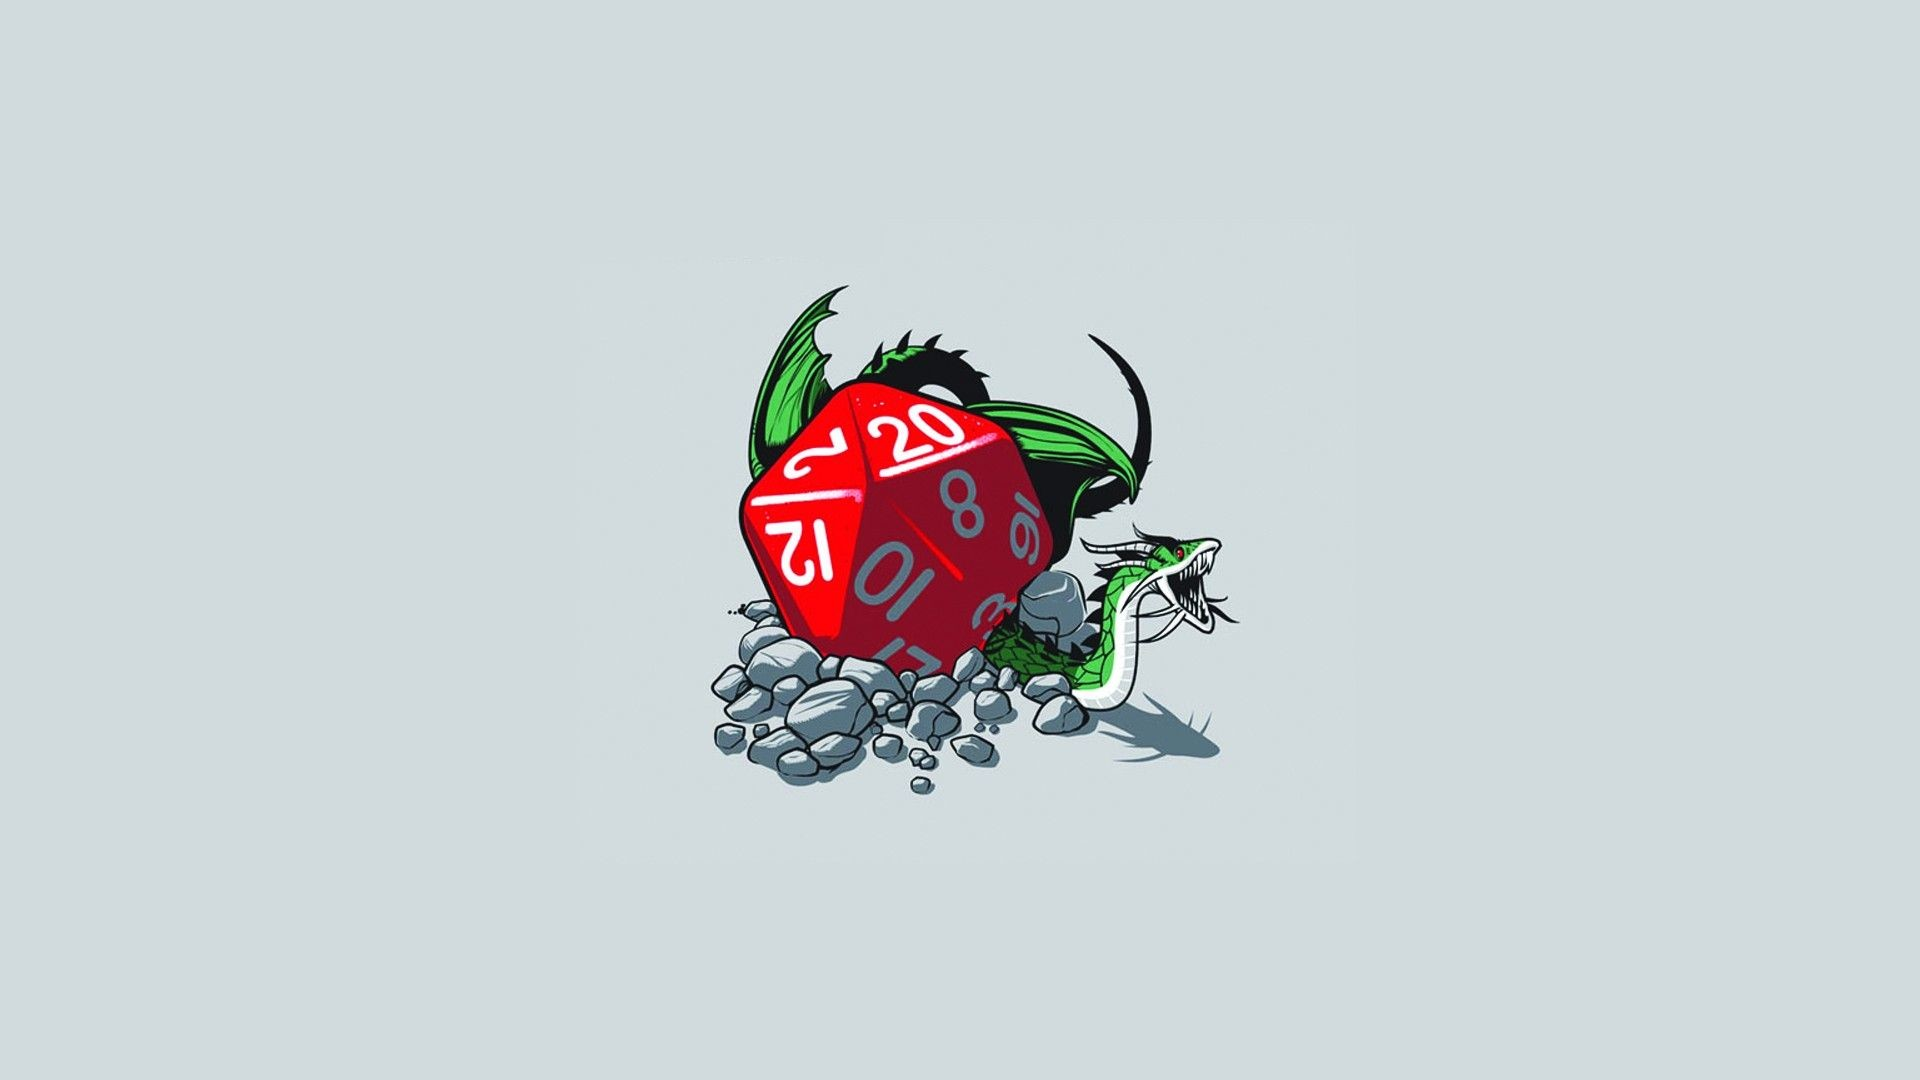 Res: 1920x1080, Dungeons and Dragons Dragon Dice game games fantasy wallpaper